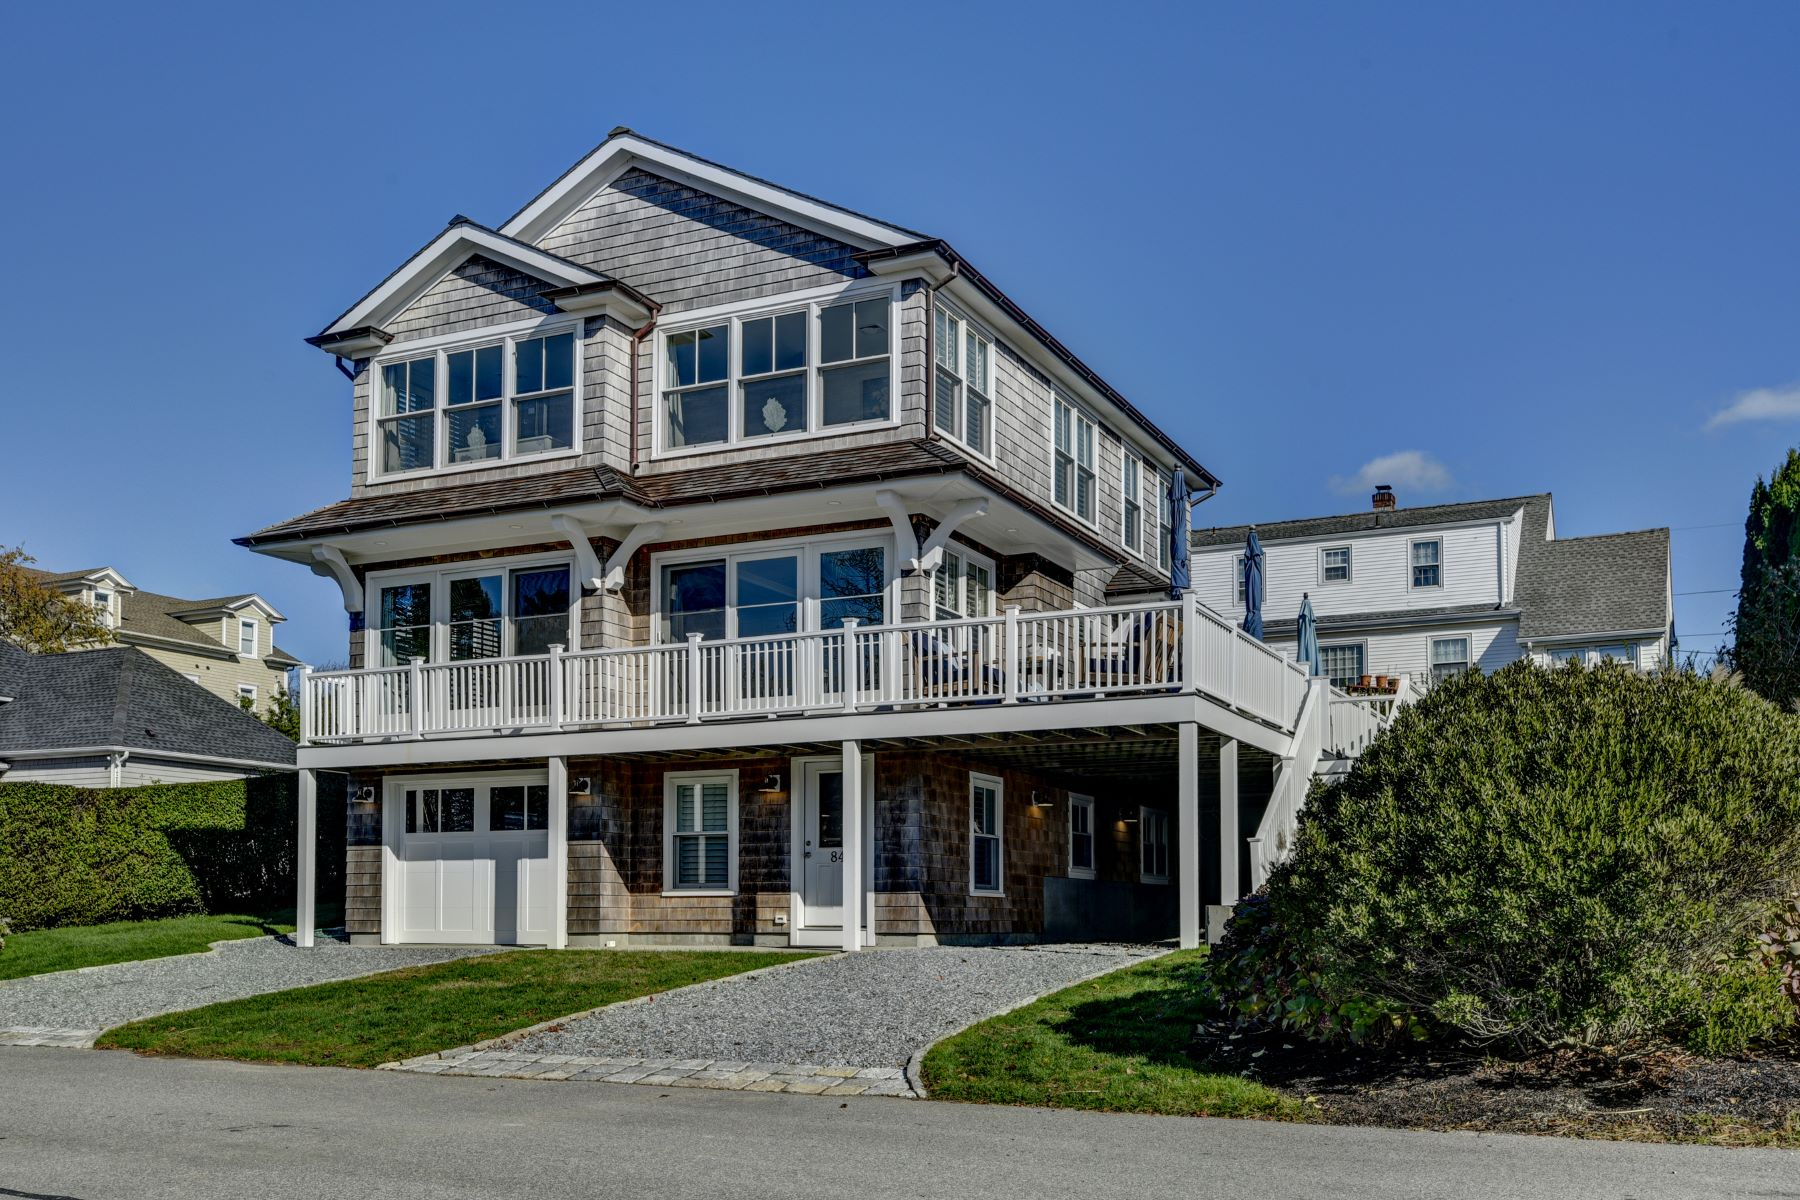 Single Family Homes for Sale at Stunning Ocean Views and Spectacular Sunsets 84 Shore Drive Middletown, Rhode Island 02842 United States